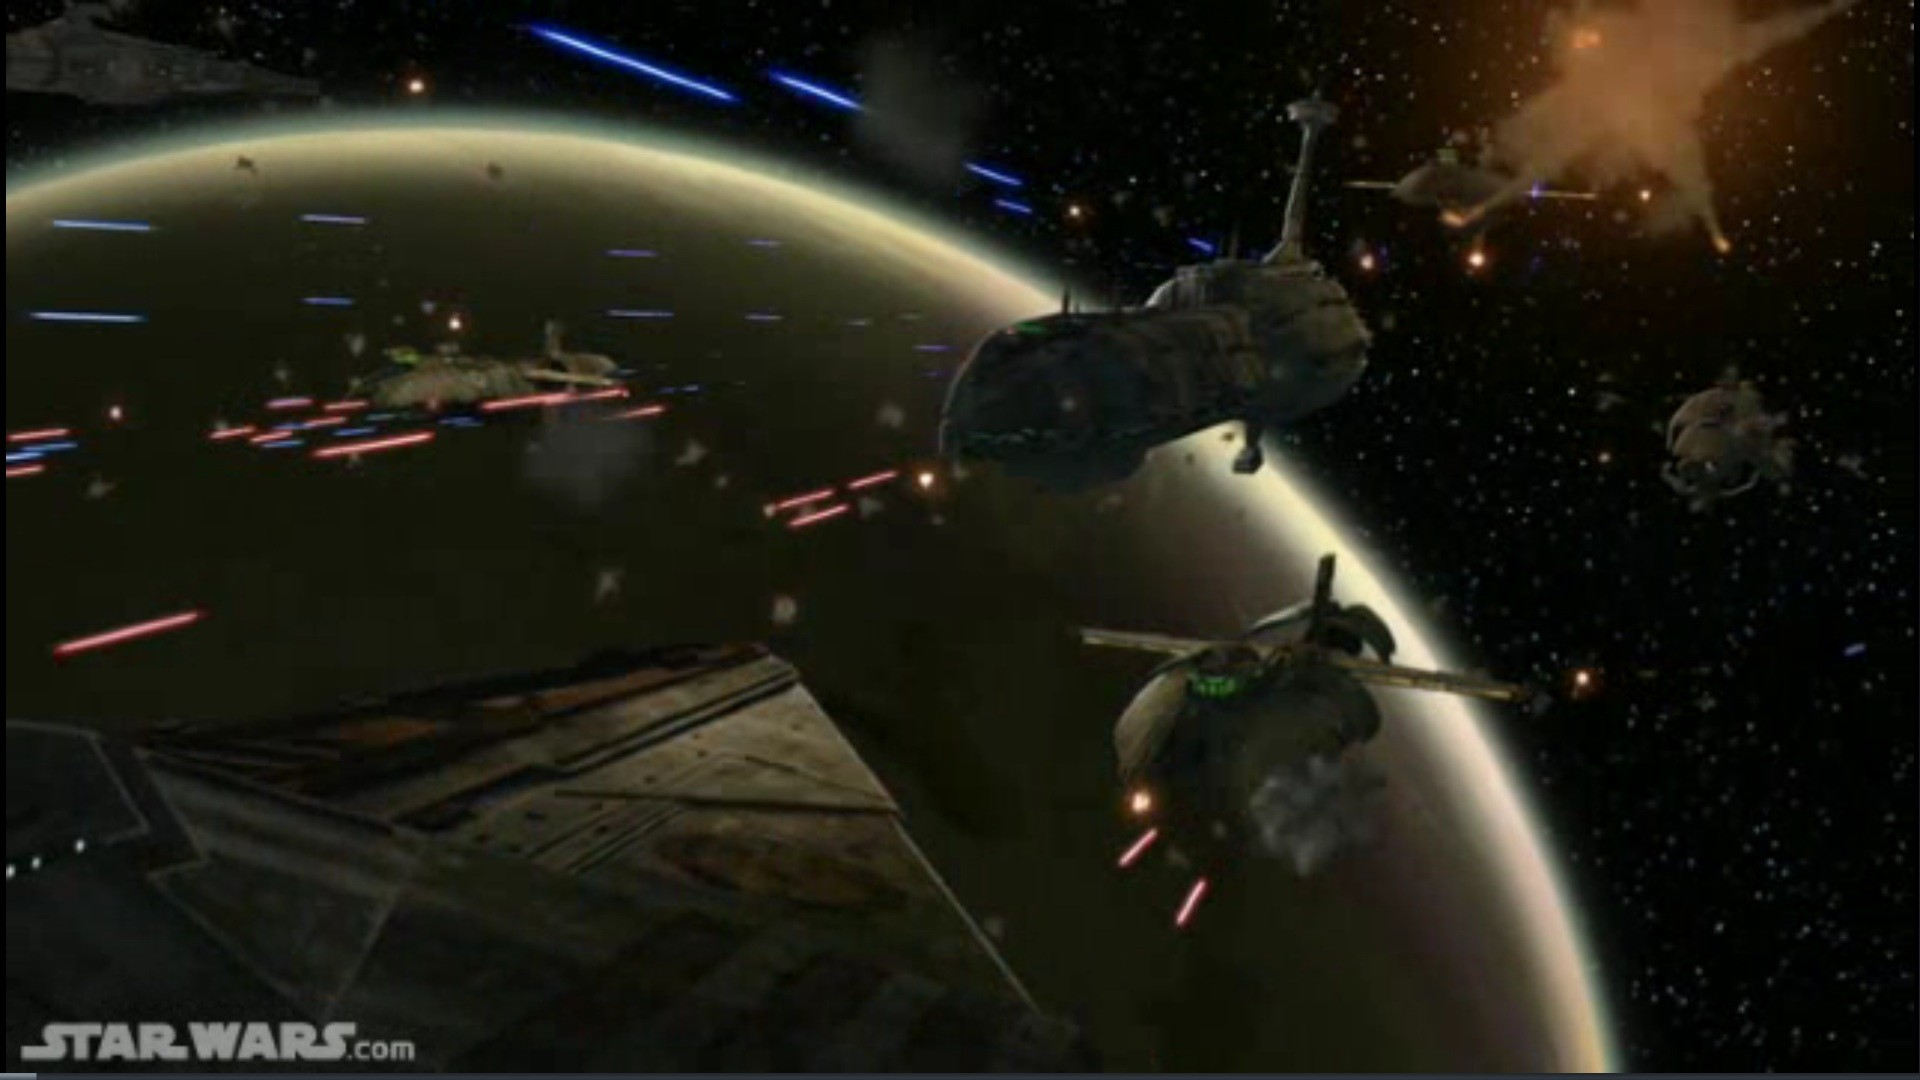 Report Rss Tcw Season 3 Space Battle Image Data Src Star Wars Clone Civil War 1920x1080 Wallpaper Teahub Io